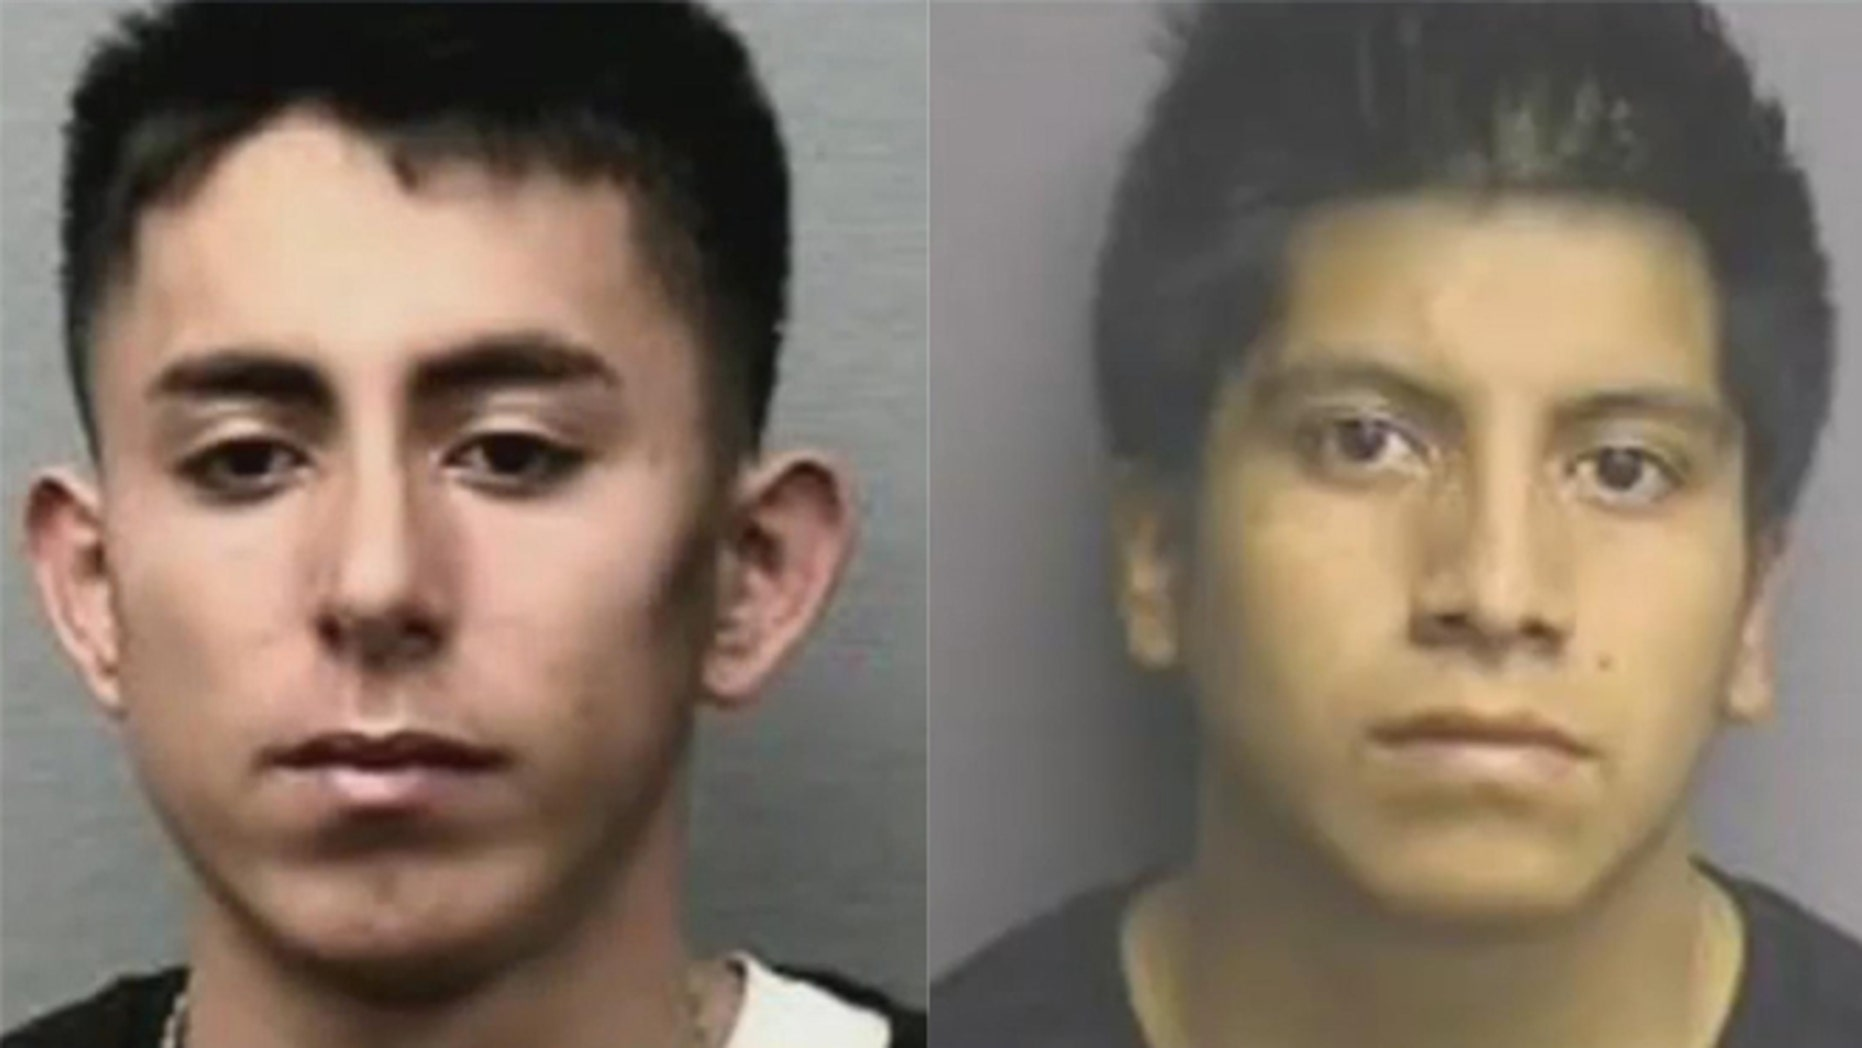 Joanthan Adonay Benitez (left) and Jose Edgar Vasquez-Mejia (right) are wanted by police.